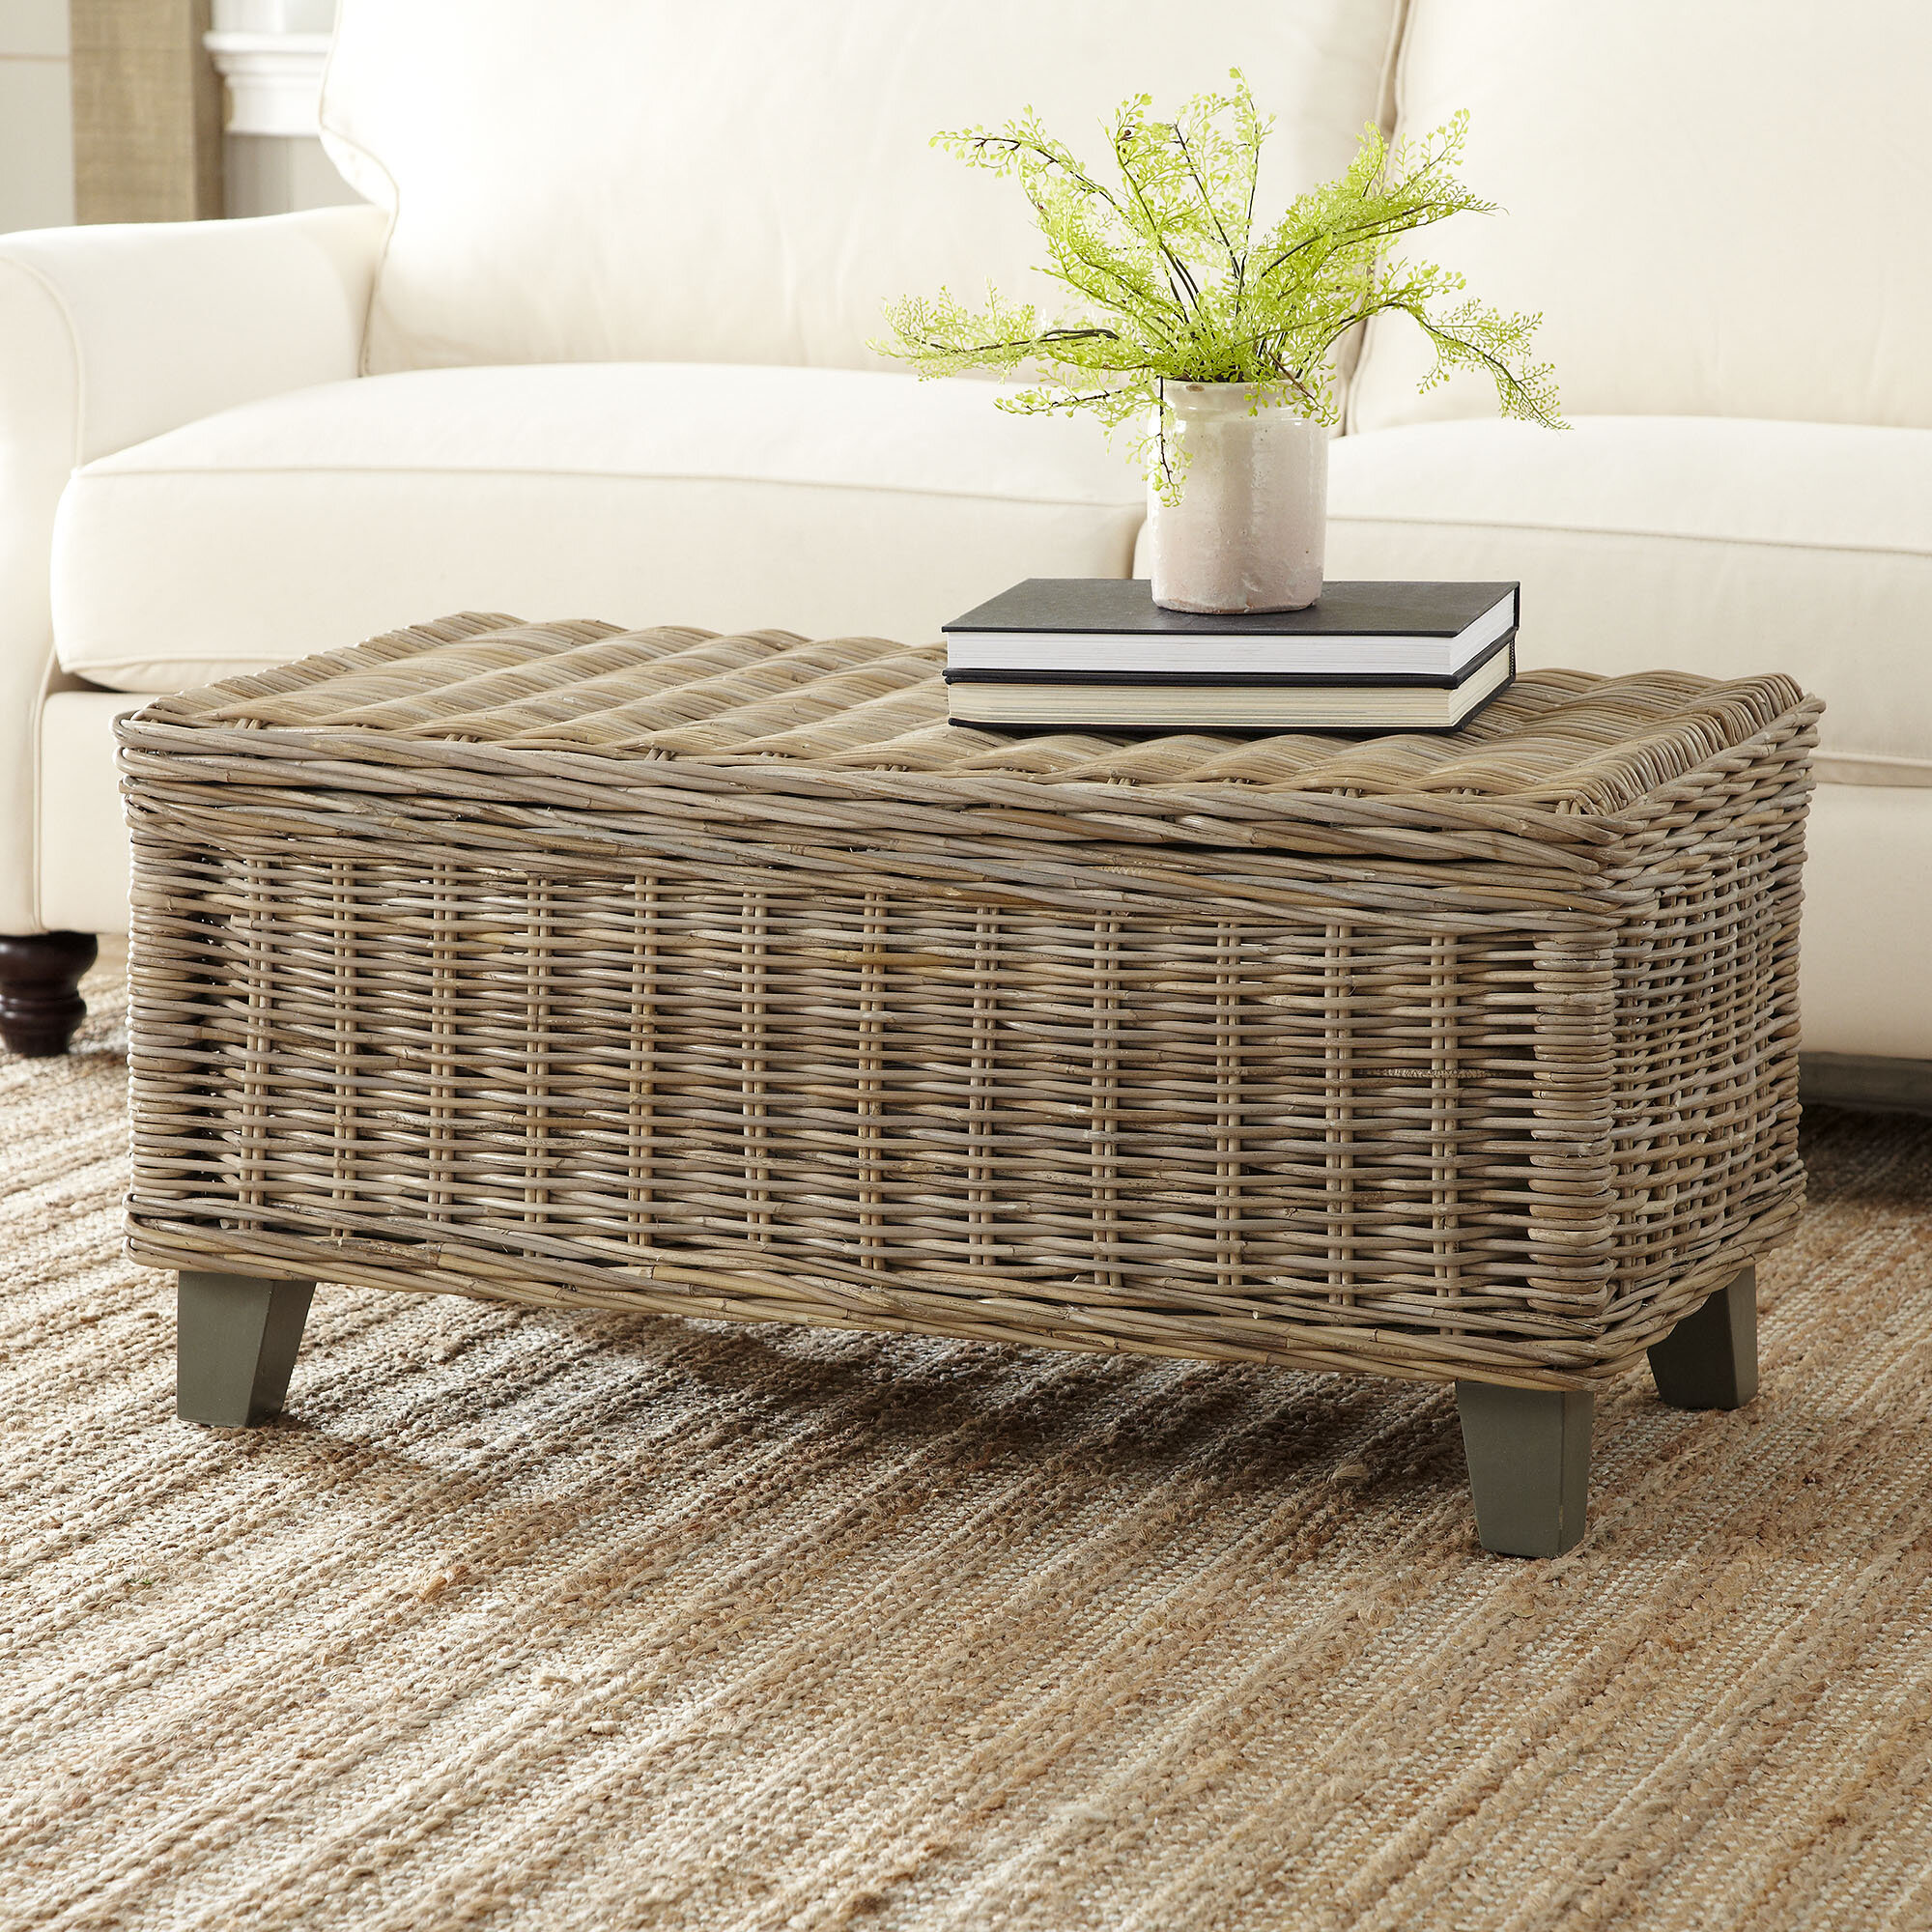 - Rosecliff Heights North Bay Rattan Coffee Table With Storage